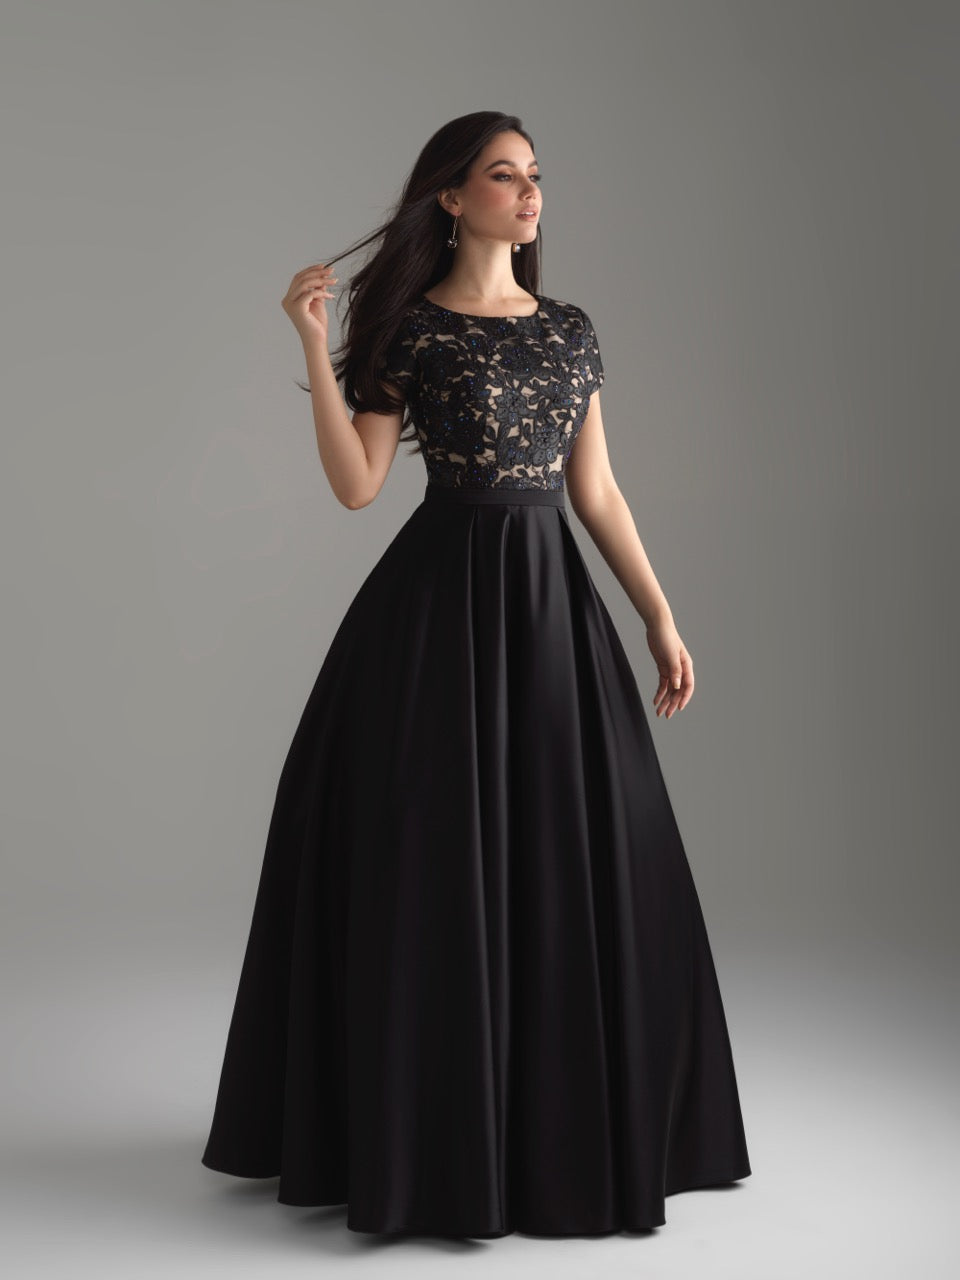 Madison James 18-804M black modest prom dress A-Line winter formal cap sleeves cheap Mormon Prom conservative